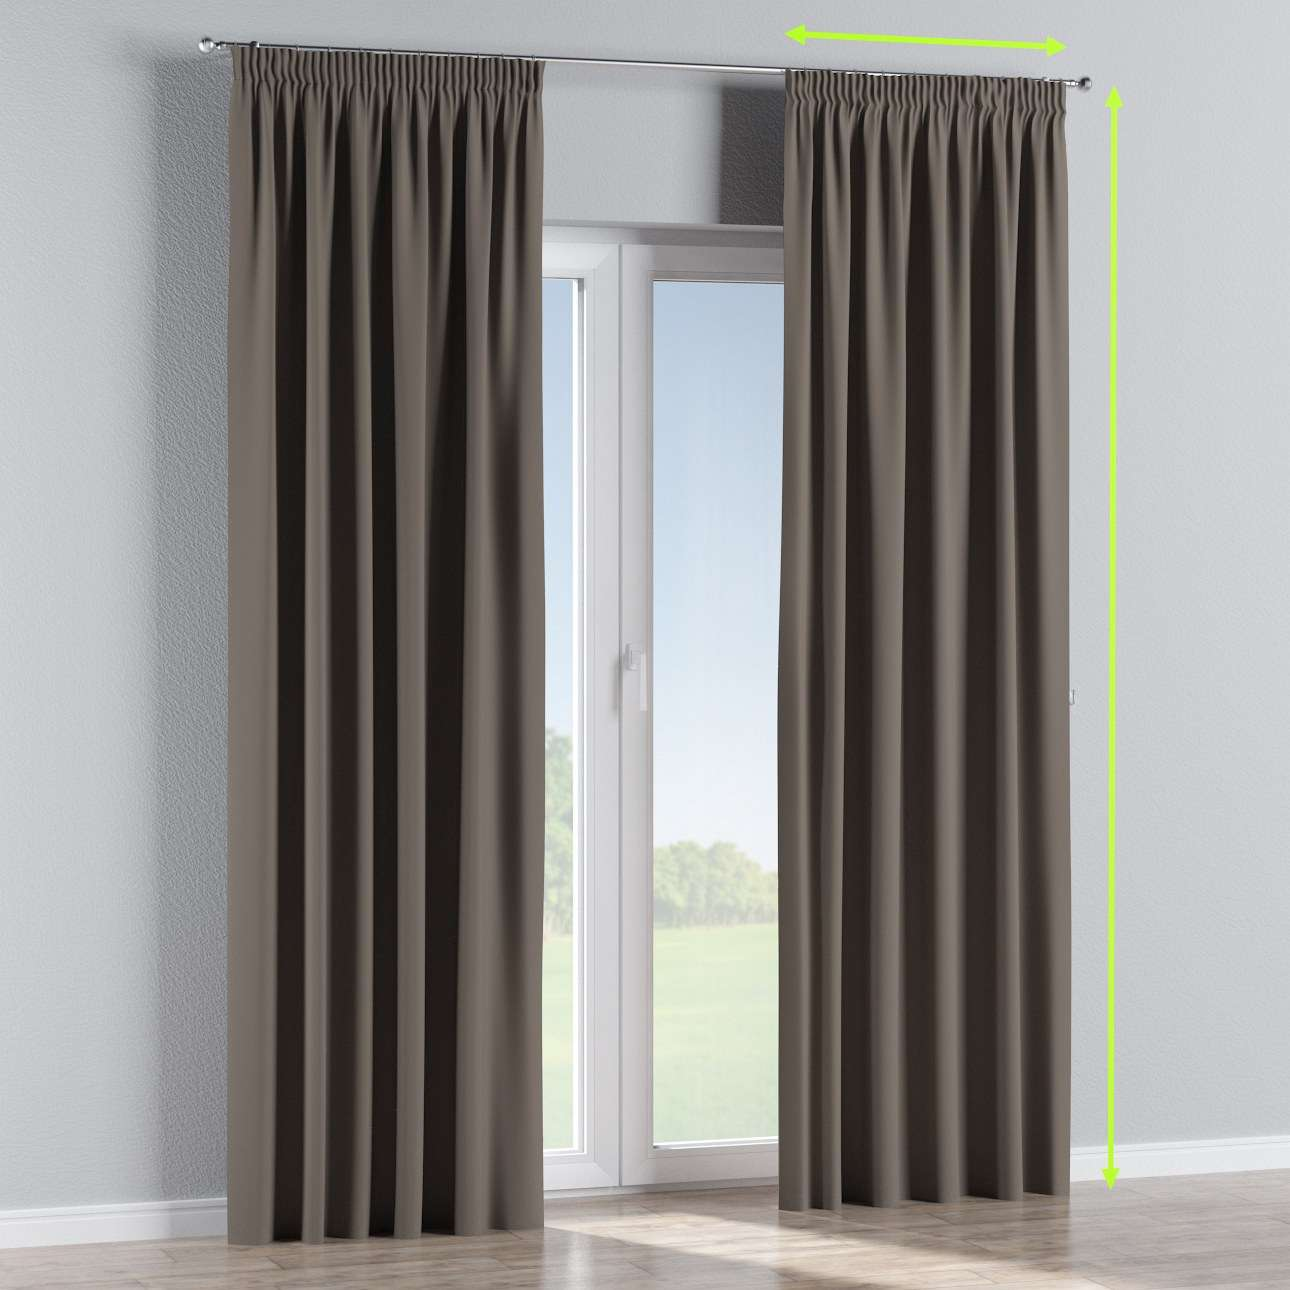 Pencil pleat curtains in collection Blackout, fabric: 269-80